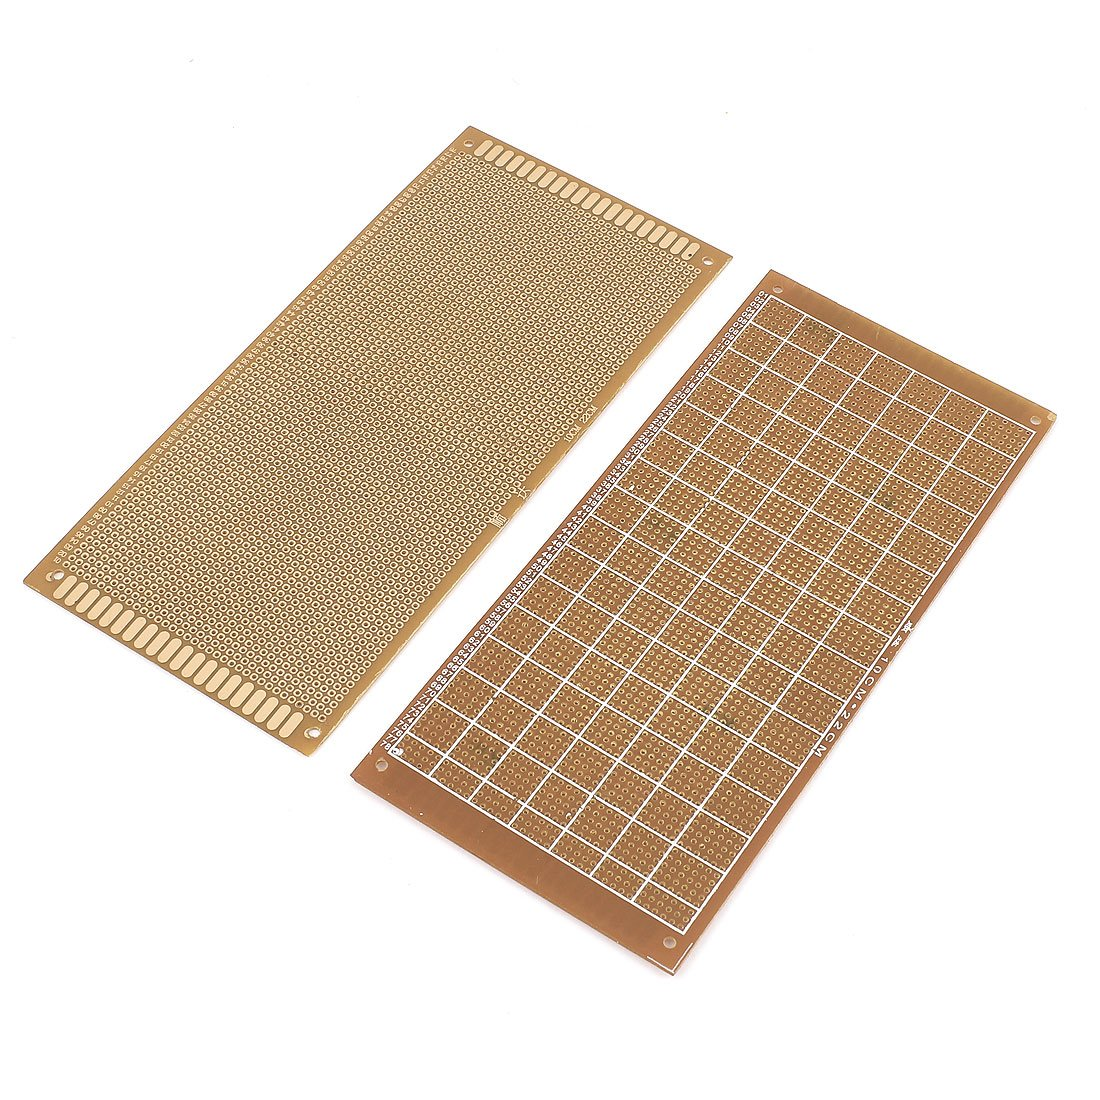 Uxcell a15050500ux0152 2 Piece Single-sided PCB Printed Circuit Board Prototype Breadboard 22cm x 10cm